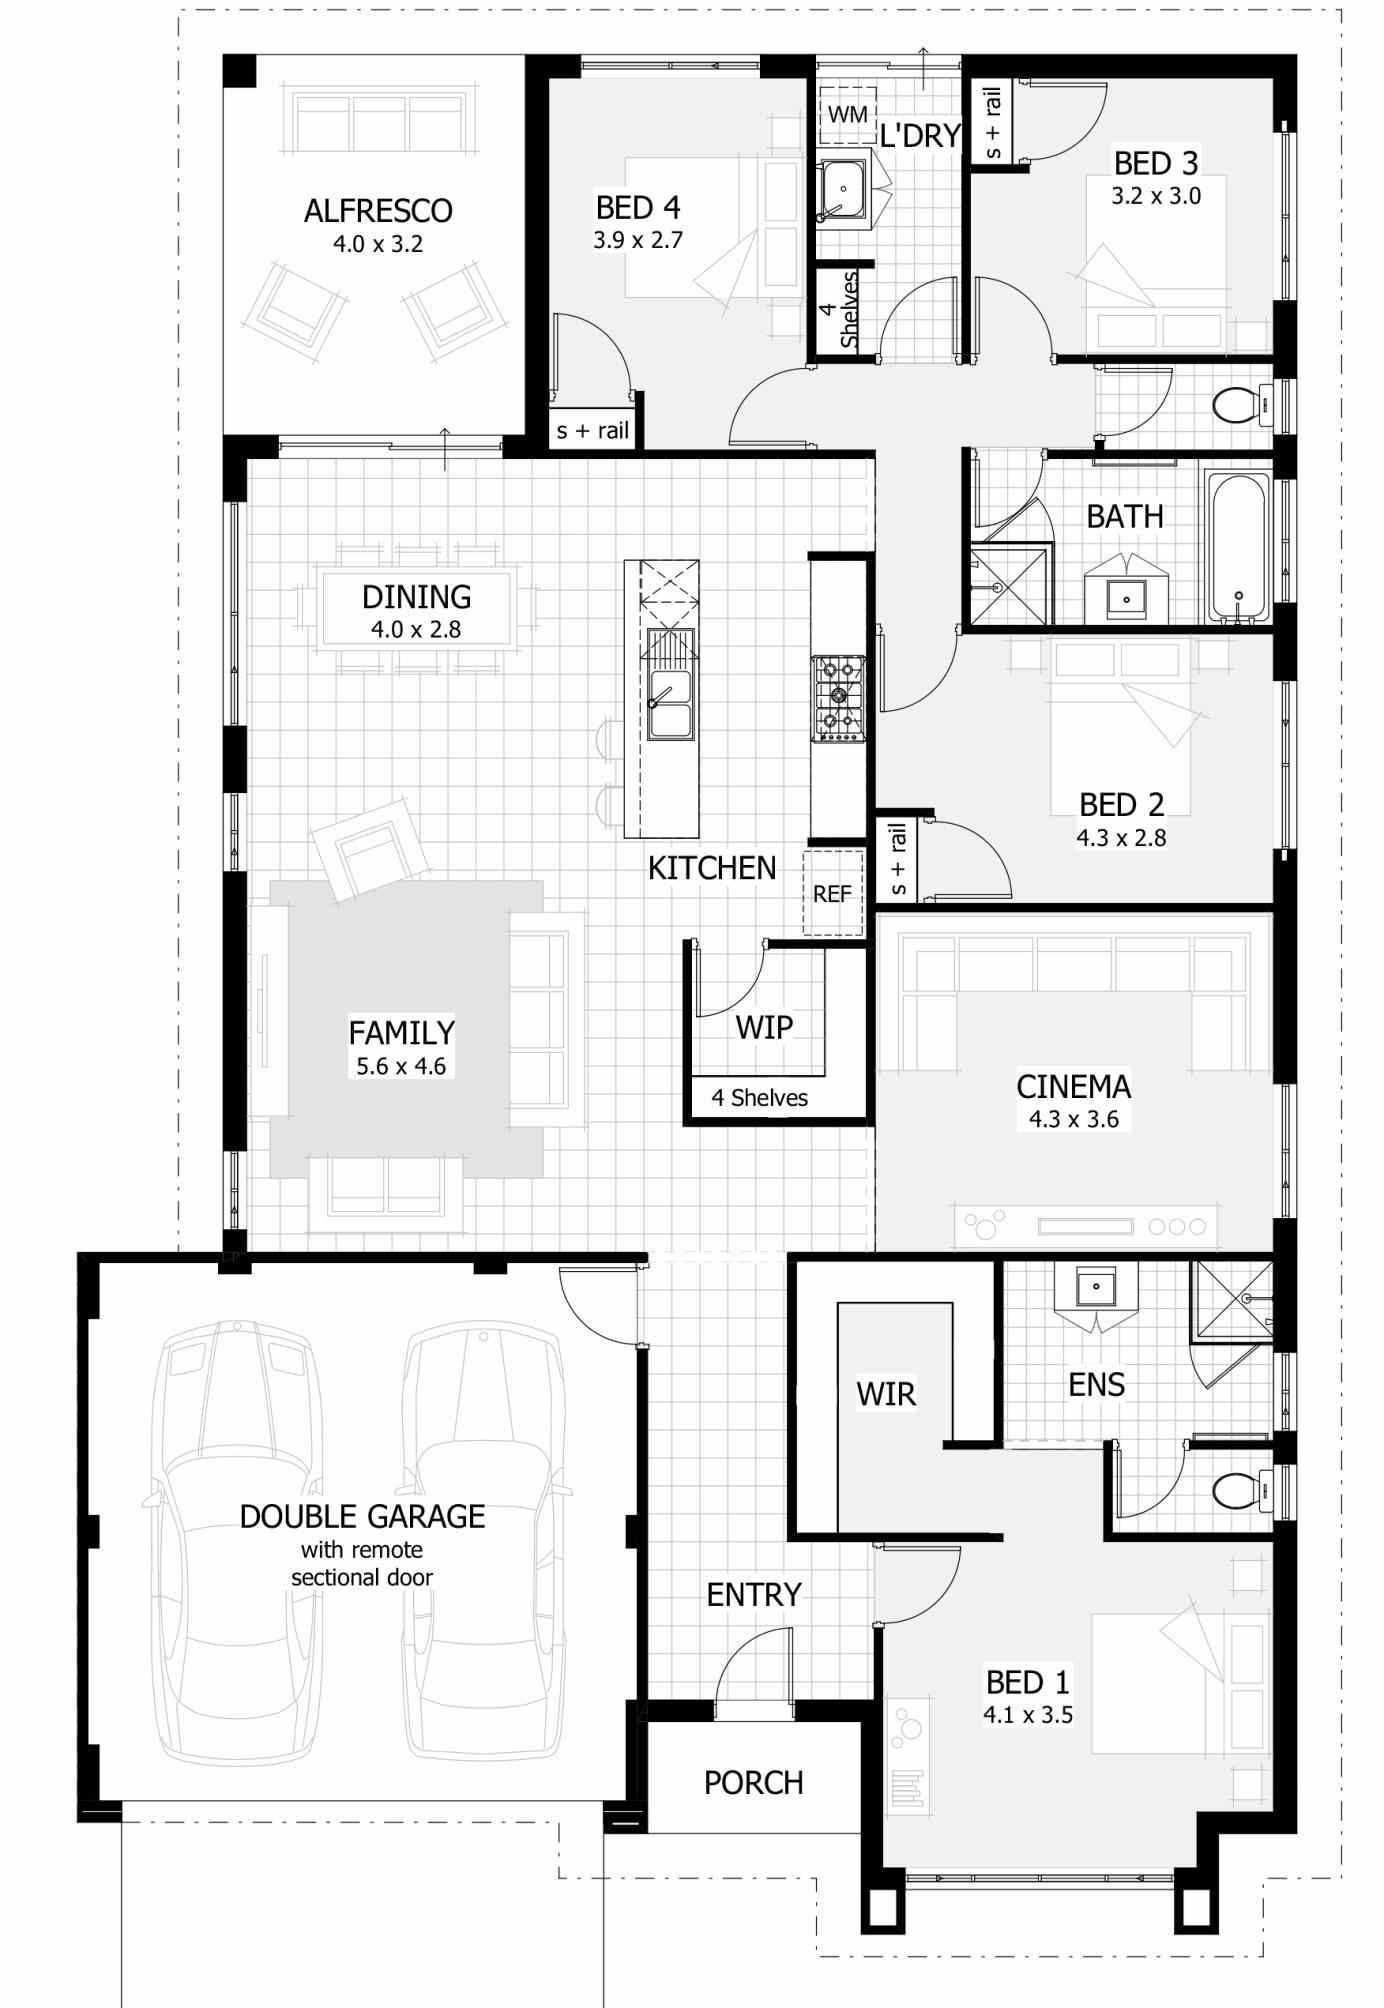 Single Story 4 Bedroom Farmhouse Plans Lovely Single Story 4 Bedroom Farmhouse Plans Single Storey House Plans House Plans Australia Australian House Plans